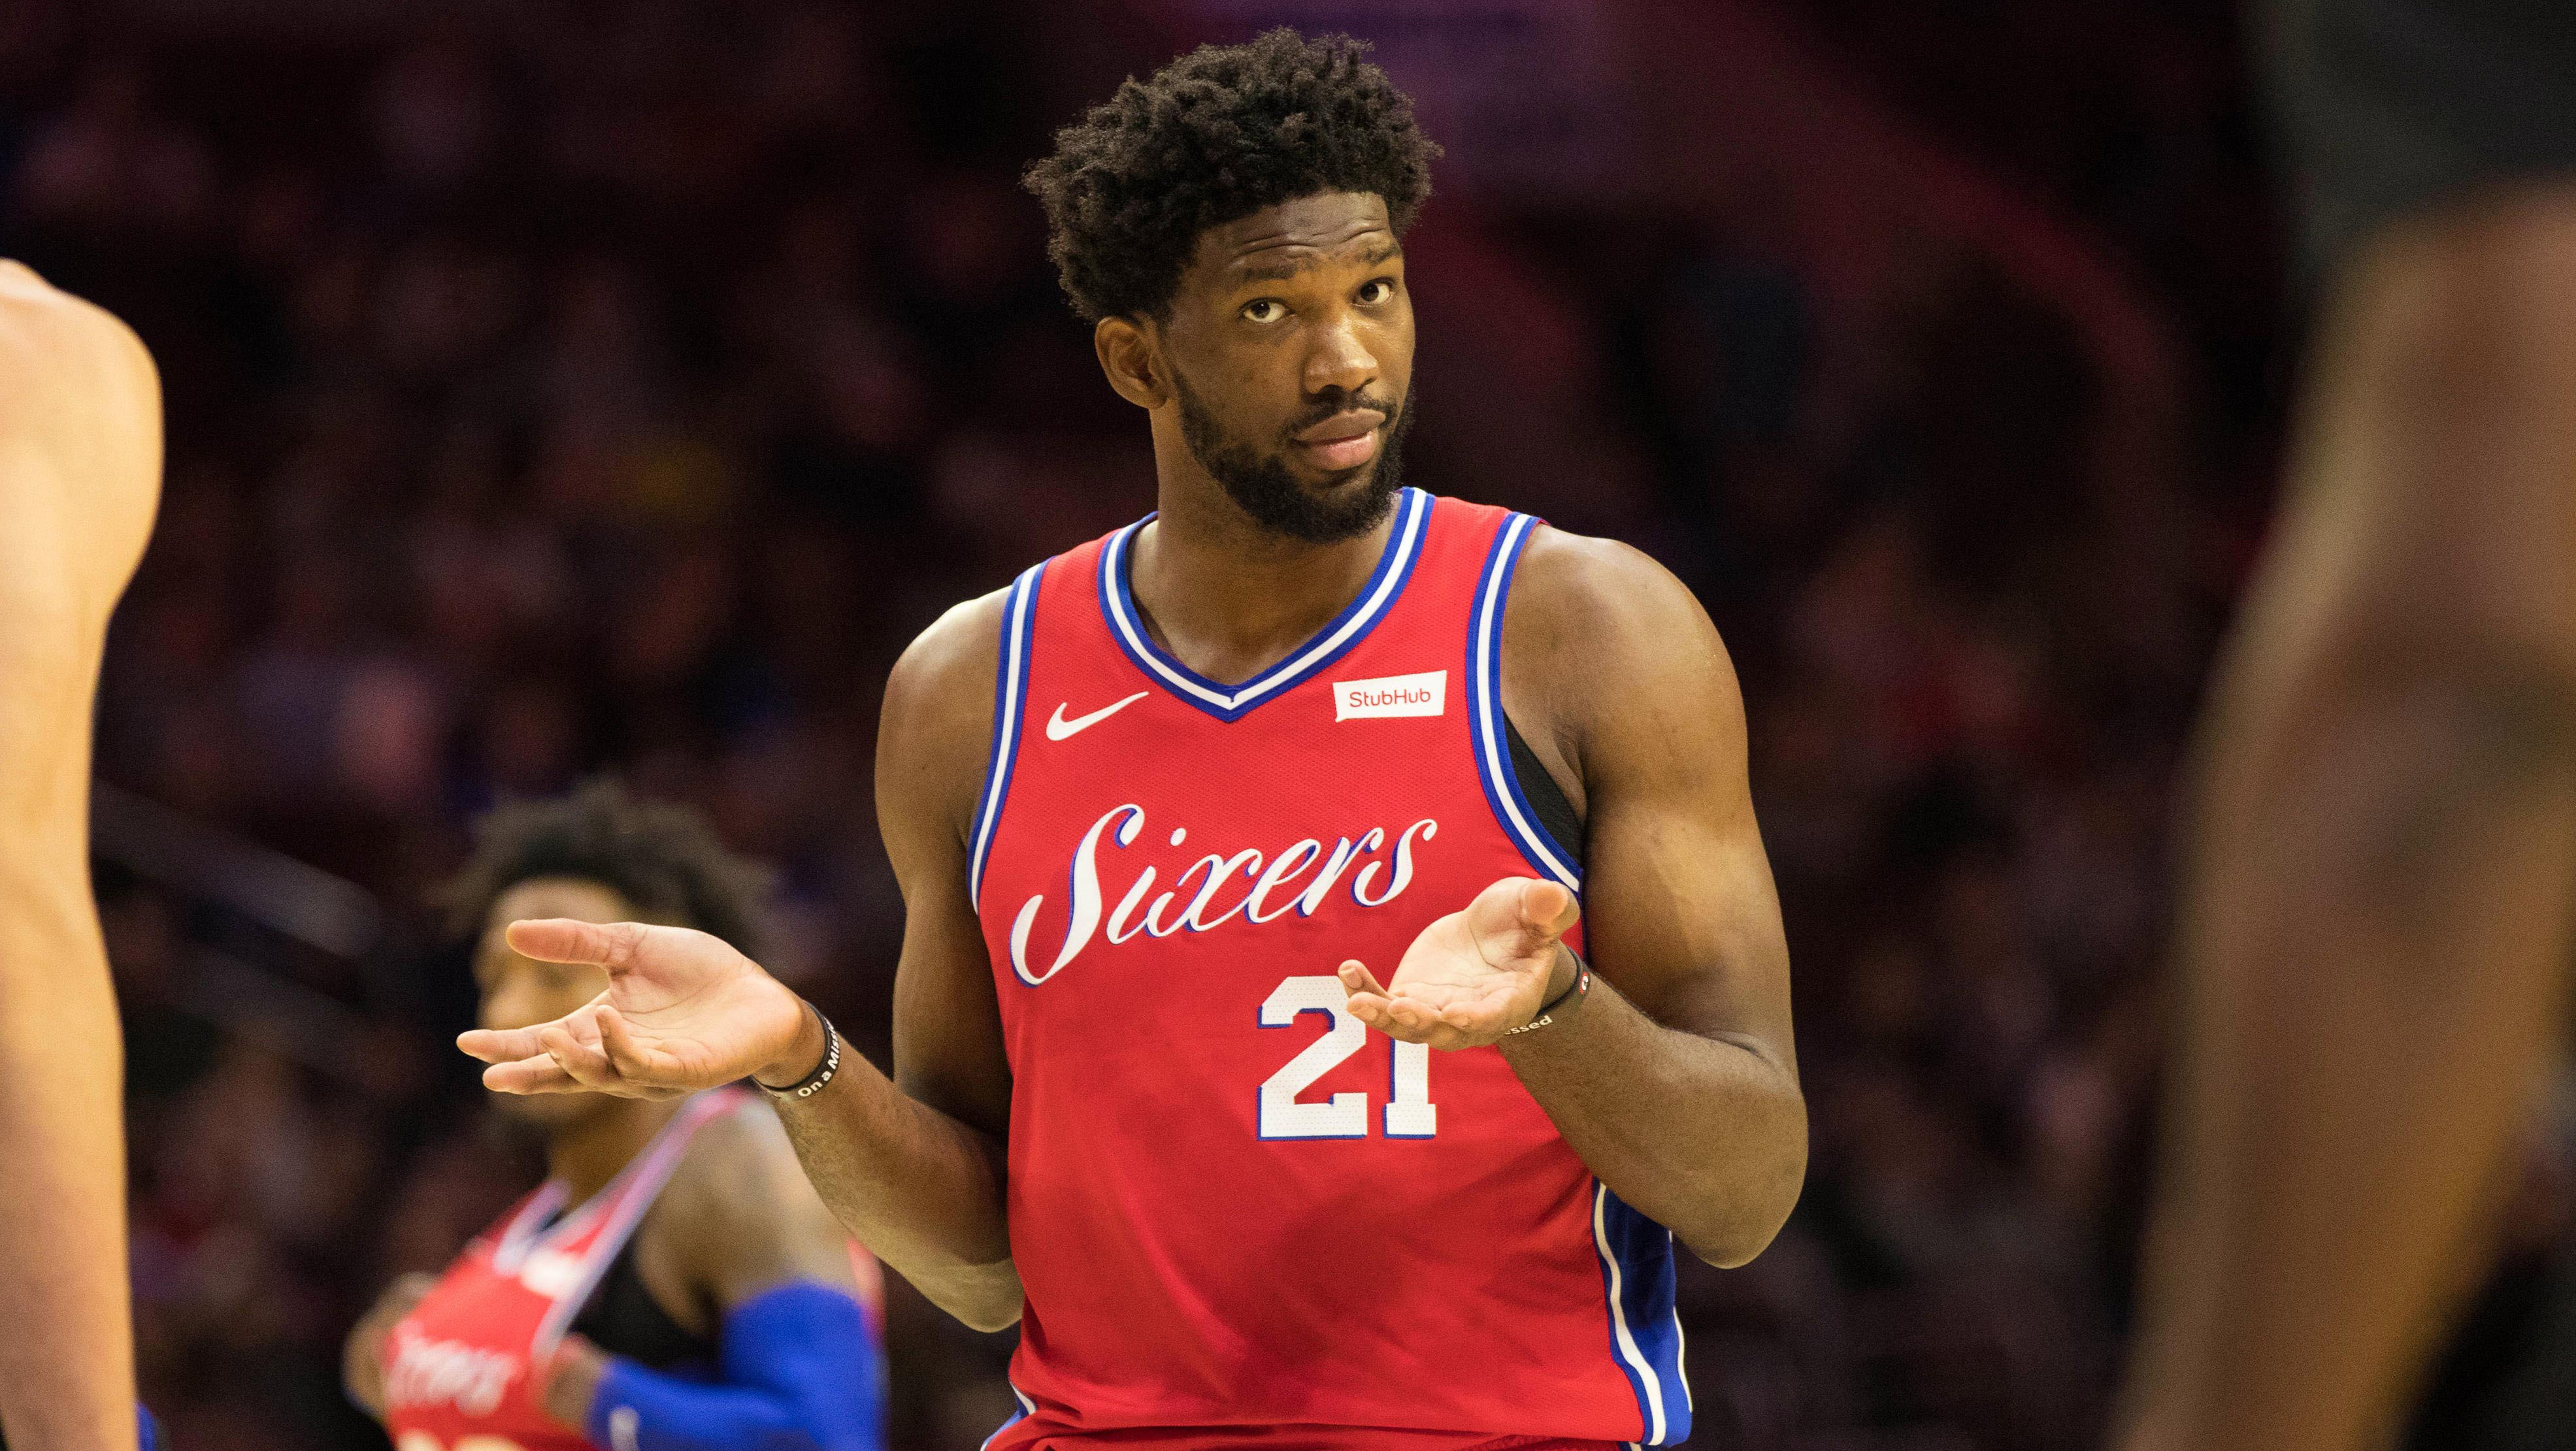 NBA Trade Rumors Joel Embiid to leave Philadelphia 76ers due to Ben Simmons and join Jimmy Butler in Miami Heat